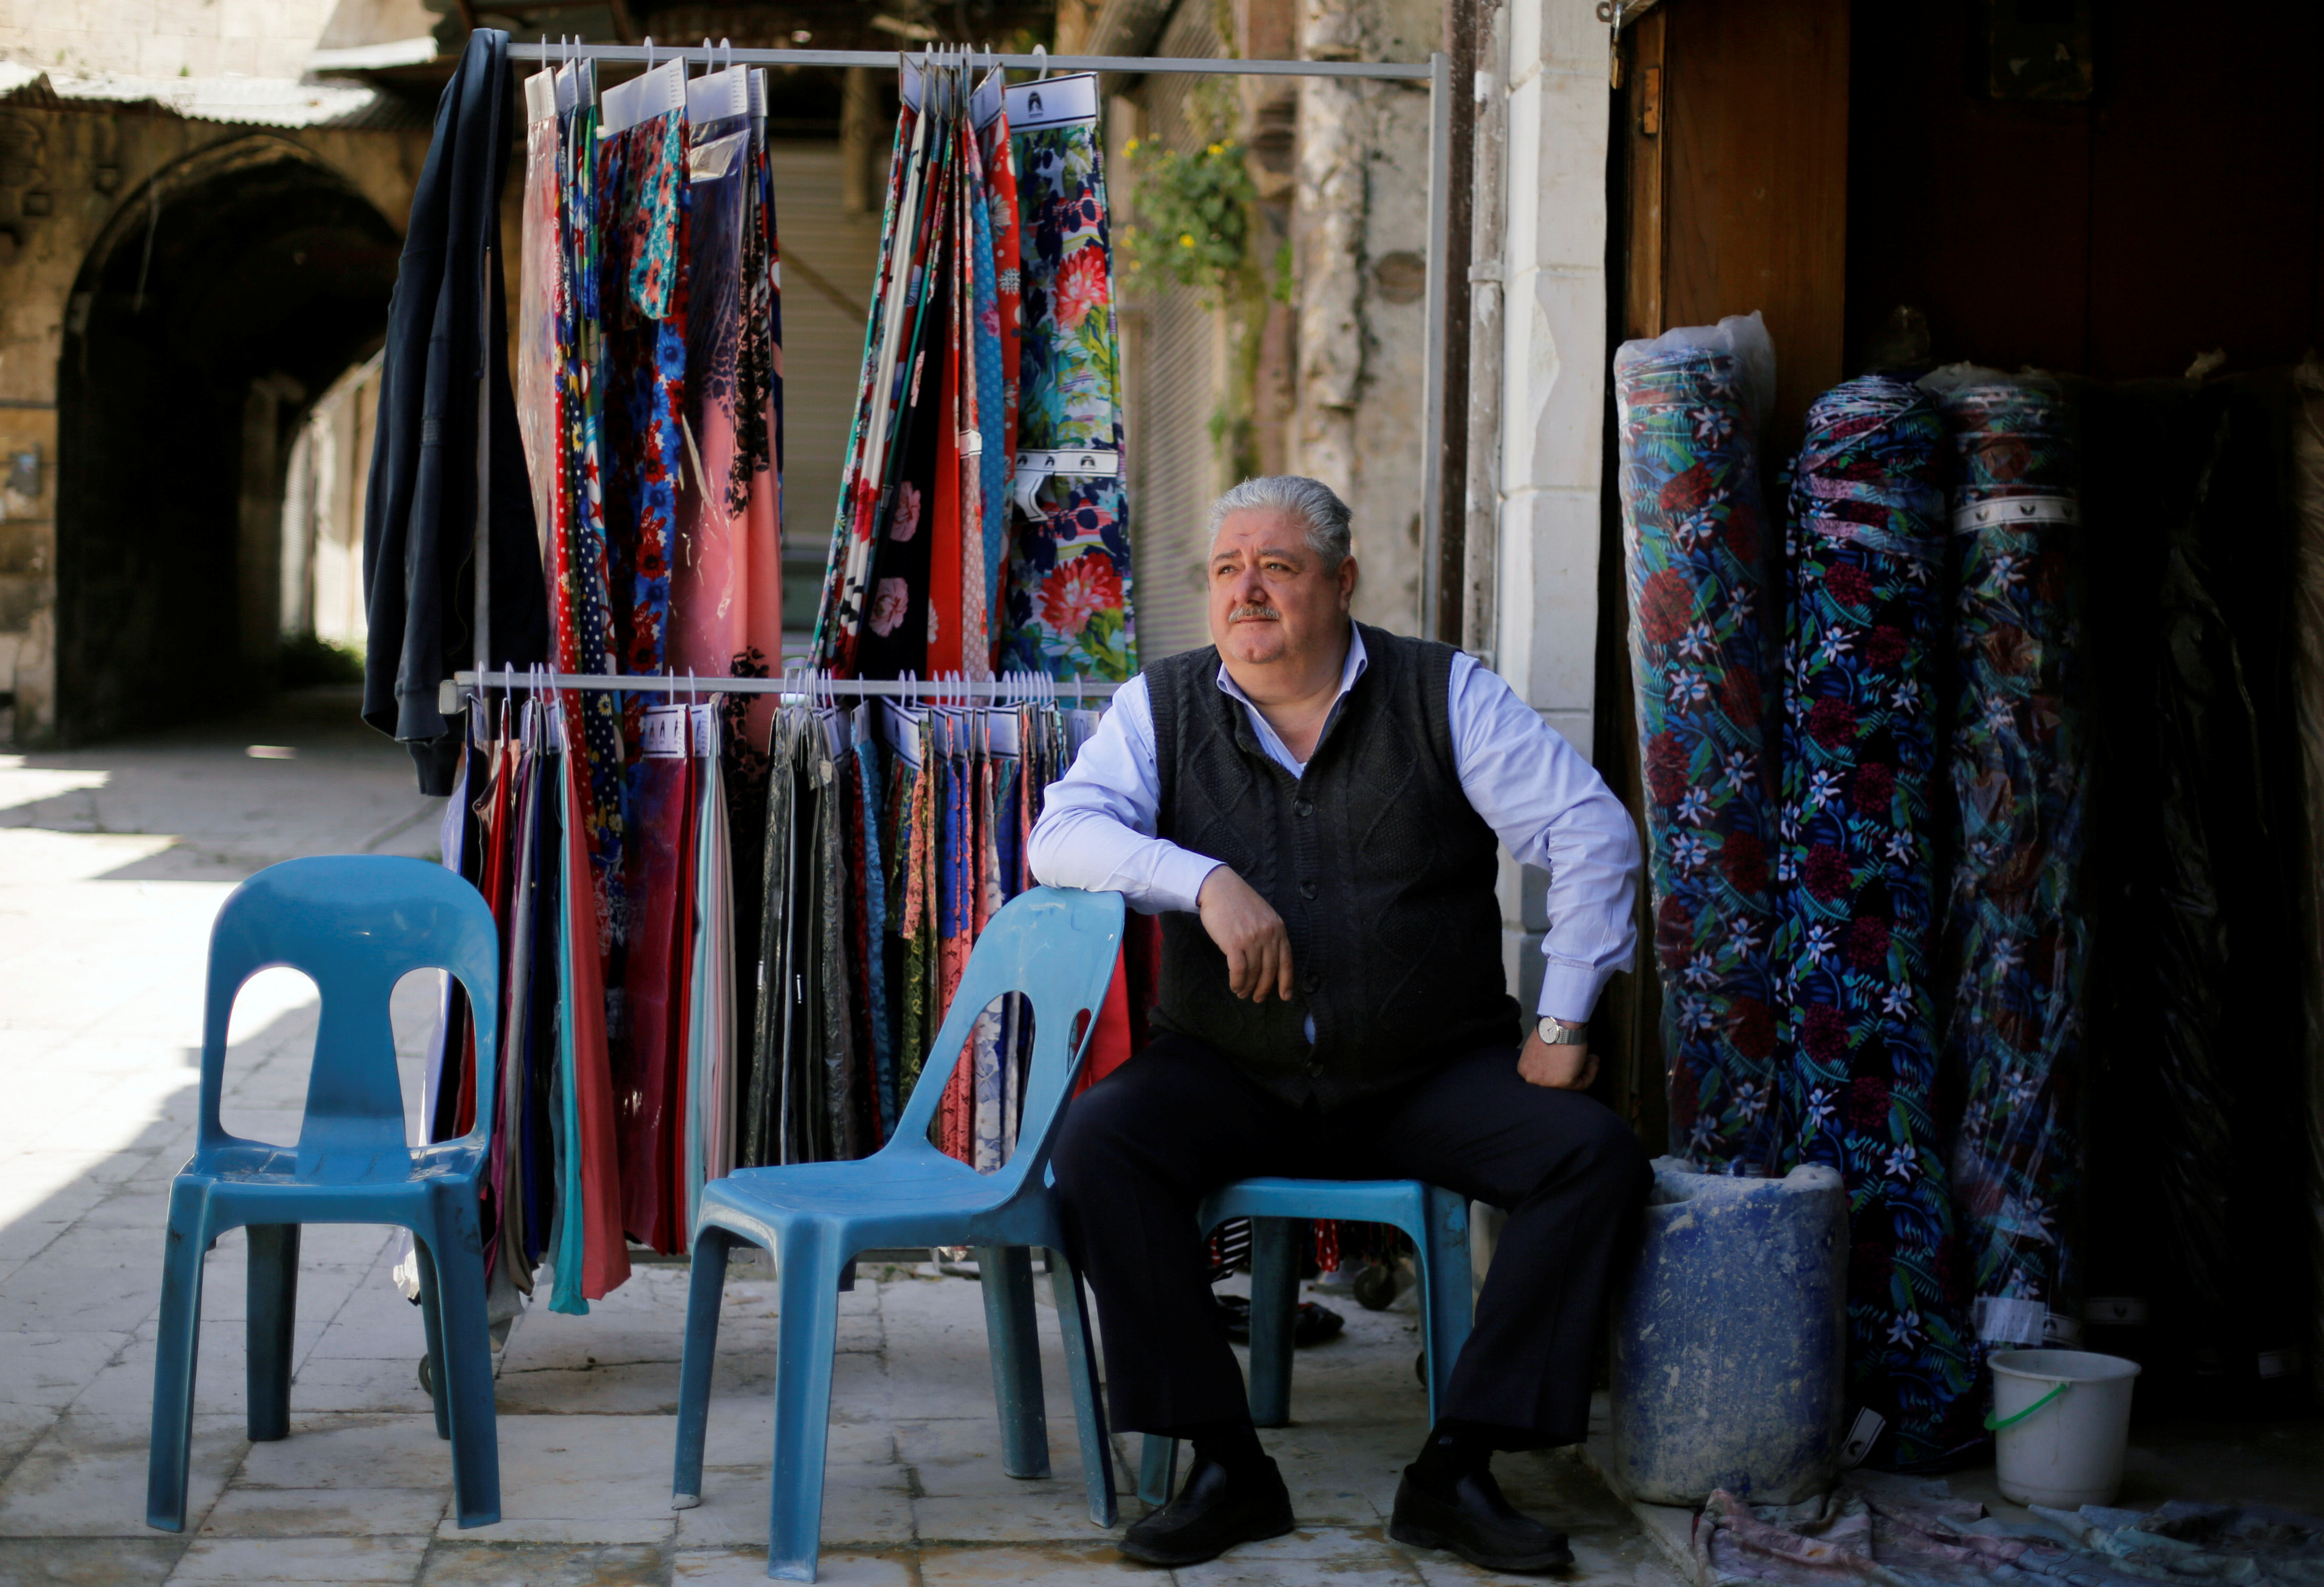 FILE PHOTO: A Syrian merchant sits at Mohammed Abu Zeid's shop in Khan Khair Bek at the old city of Aleppo, Syria April 13, 2019. REUTERS/Omar Sanadiki